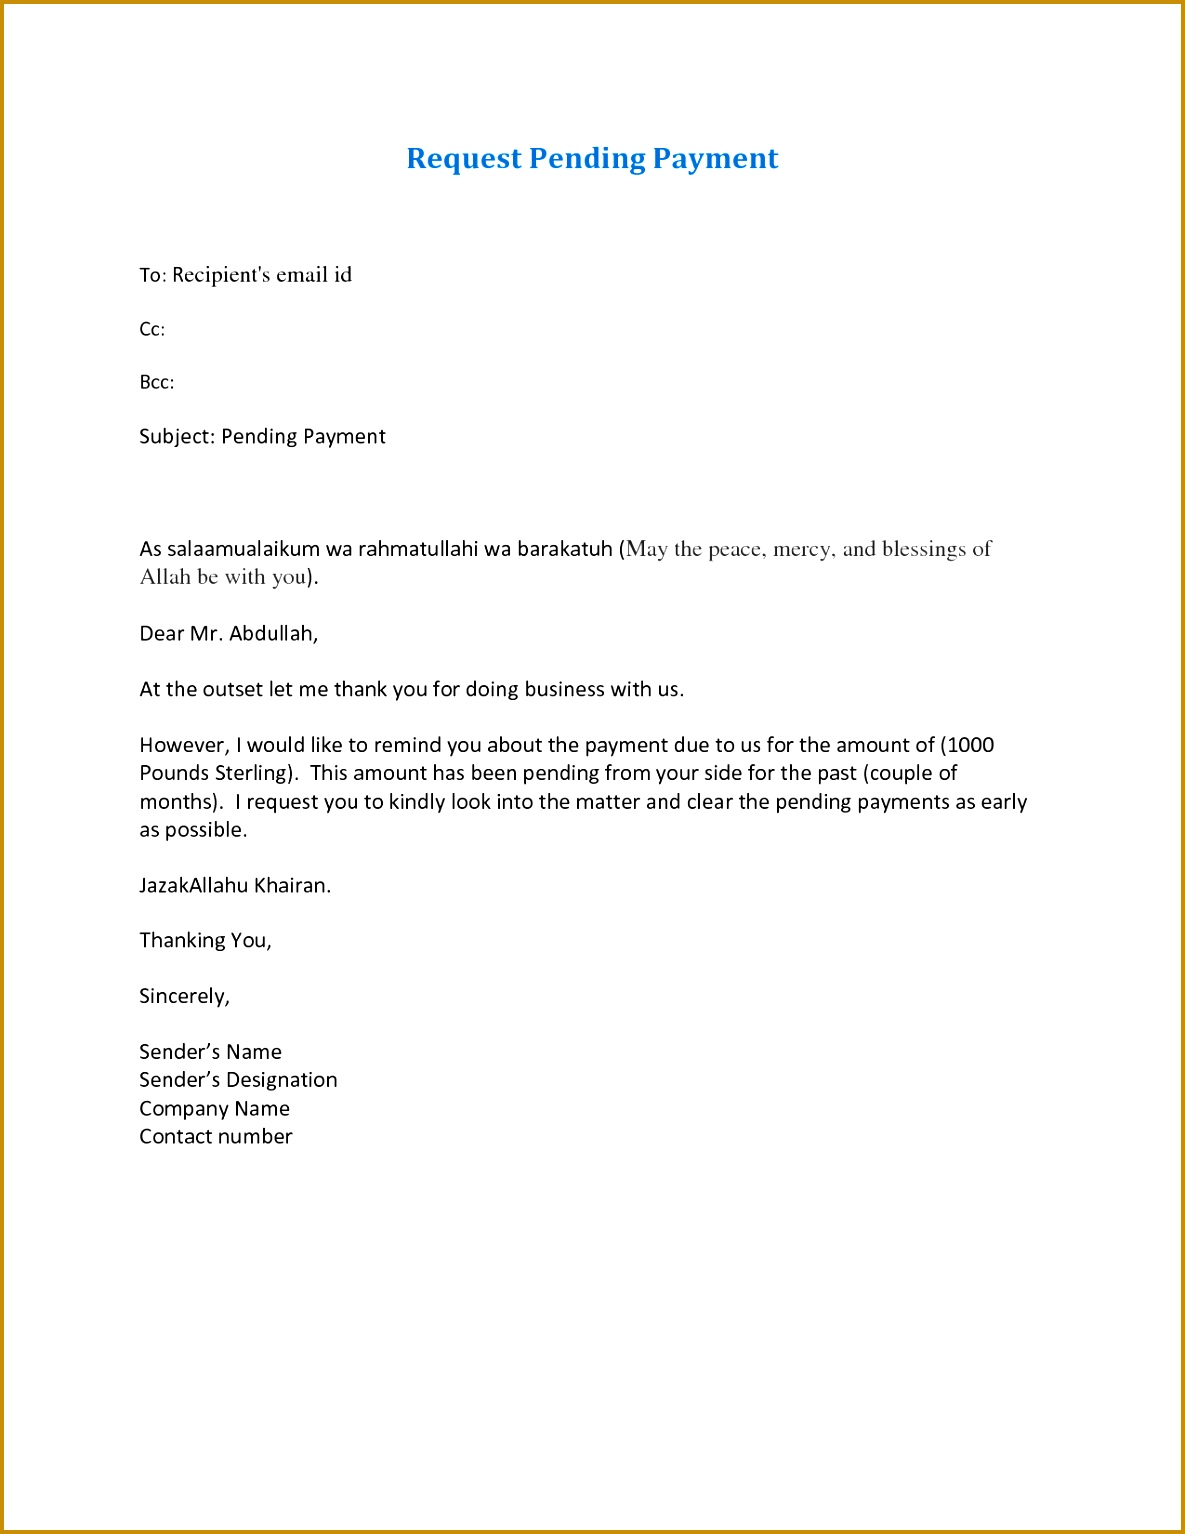 Letter Writing format for Outstanding Payment Best Sample Payment Pending Letter Bbq Grill Recipes 11851534